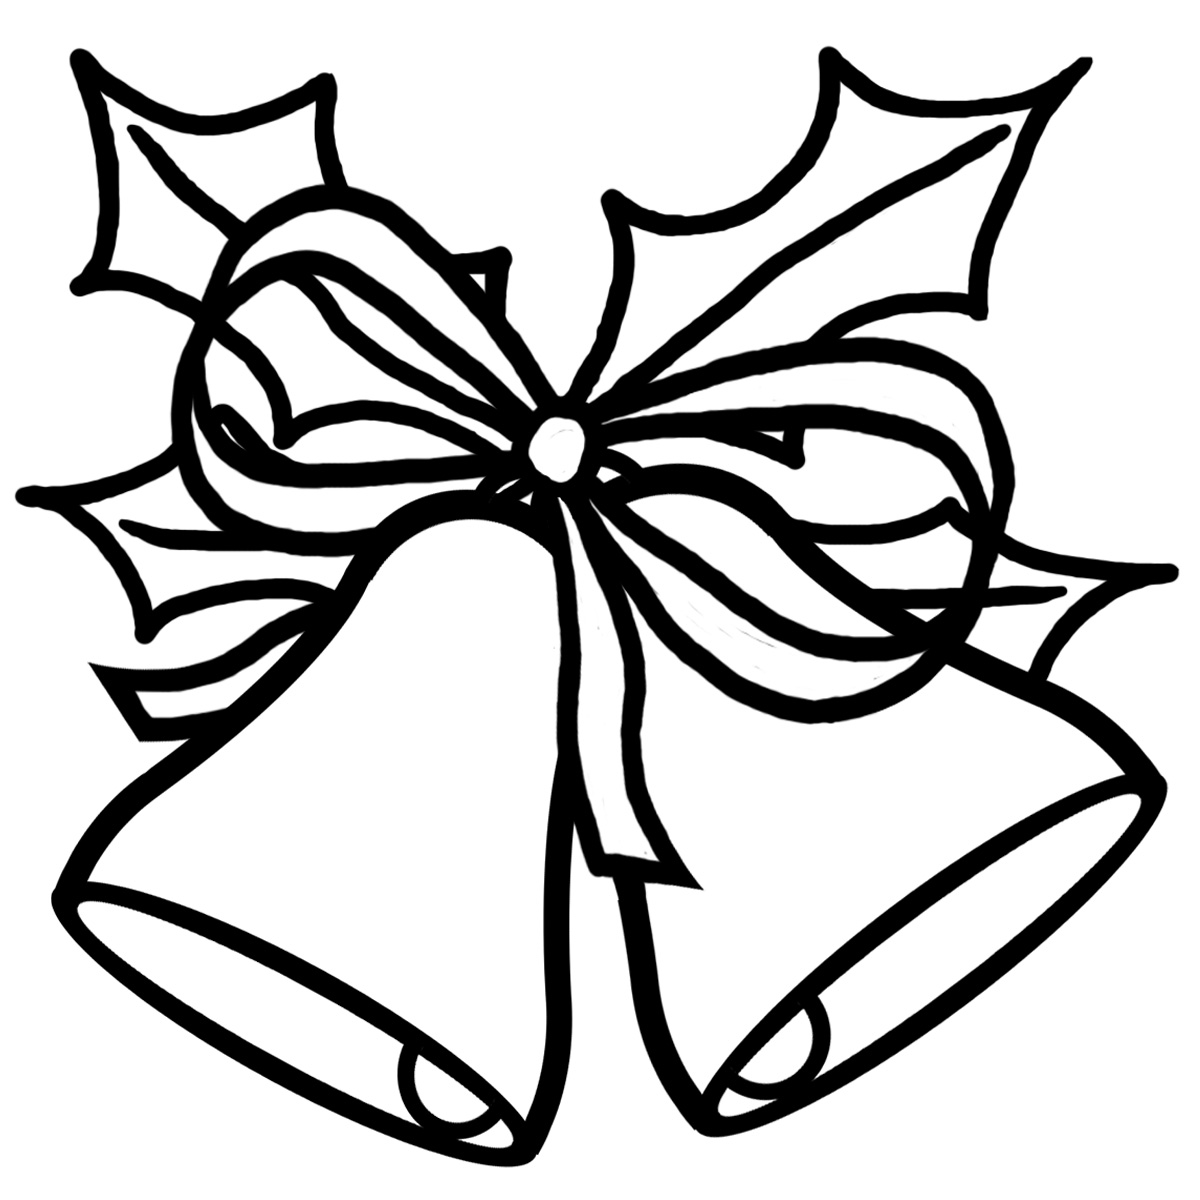 Christmas Star Clip Art Black And White Clipart Panda Free Clipart